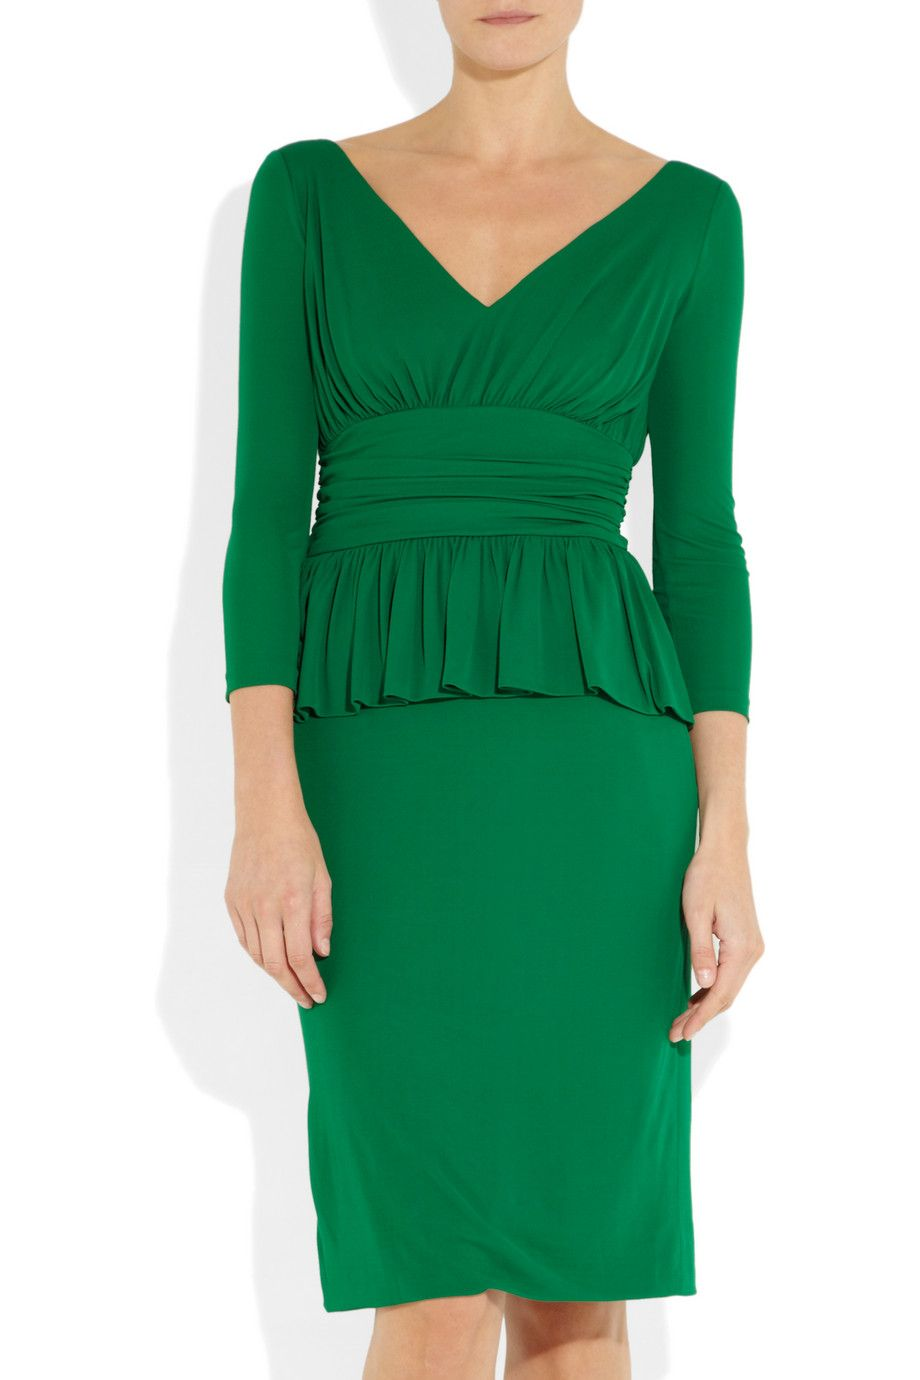 Makeup with emerald green dress  Peplum dress by Alexander McQueen  now where did I put that extra